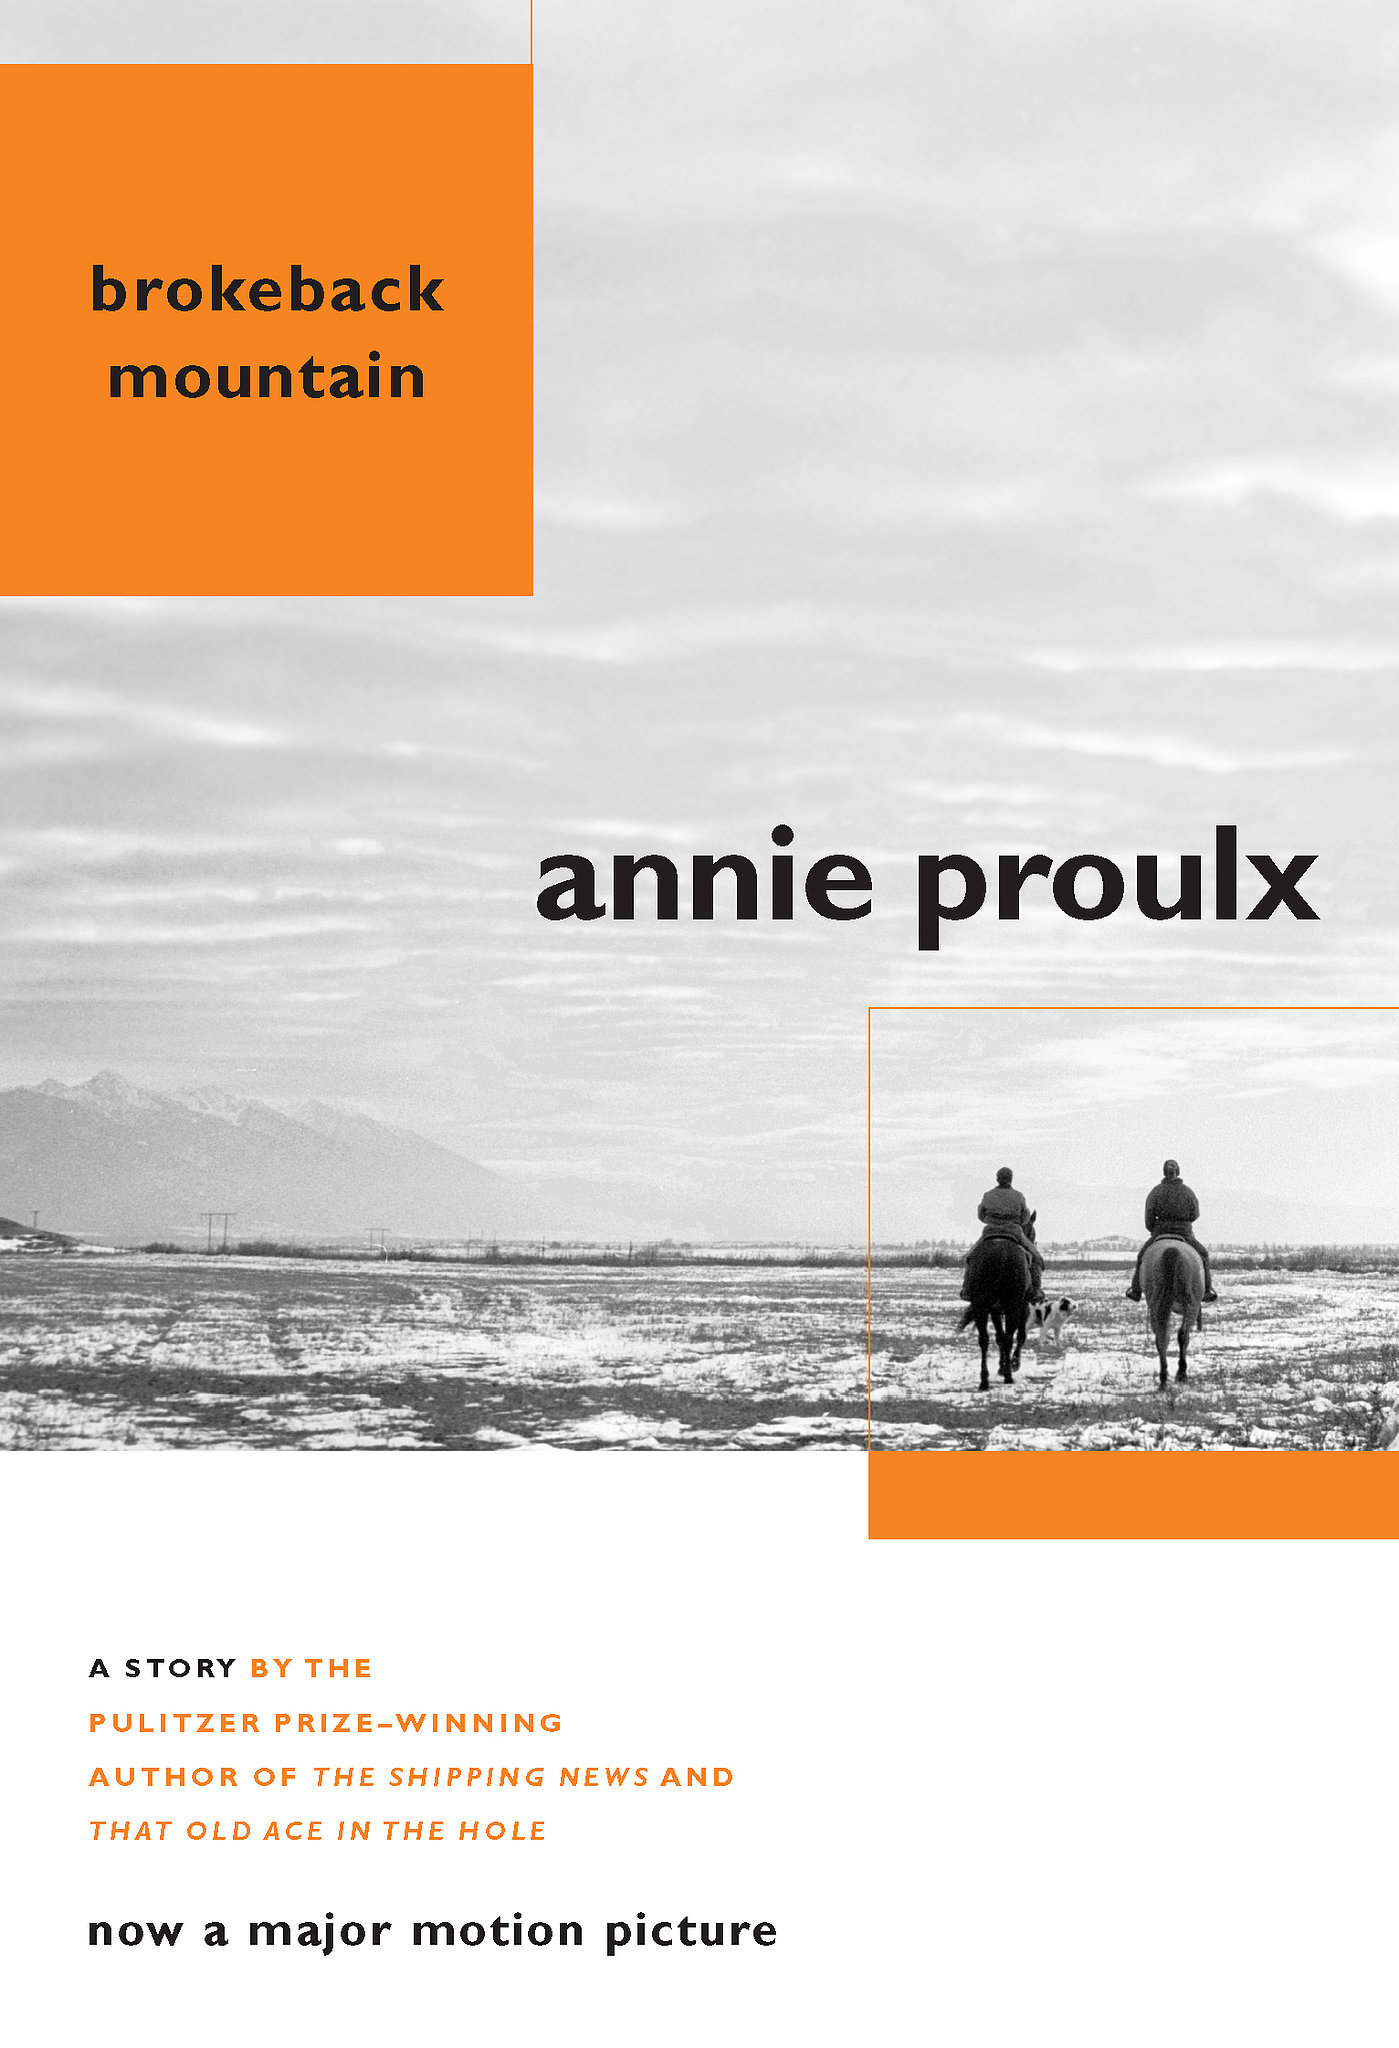 Wyoming: Brokeback Mountain by Annie Proulx